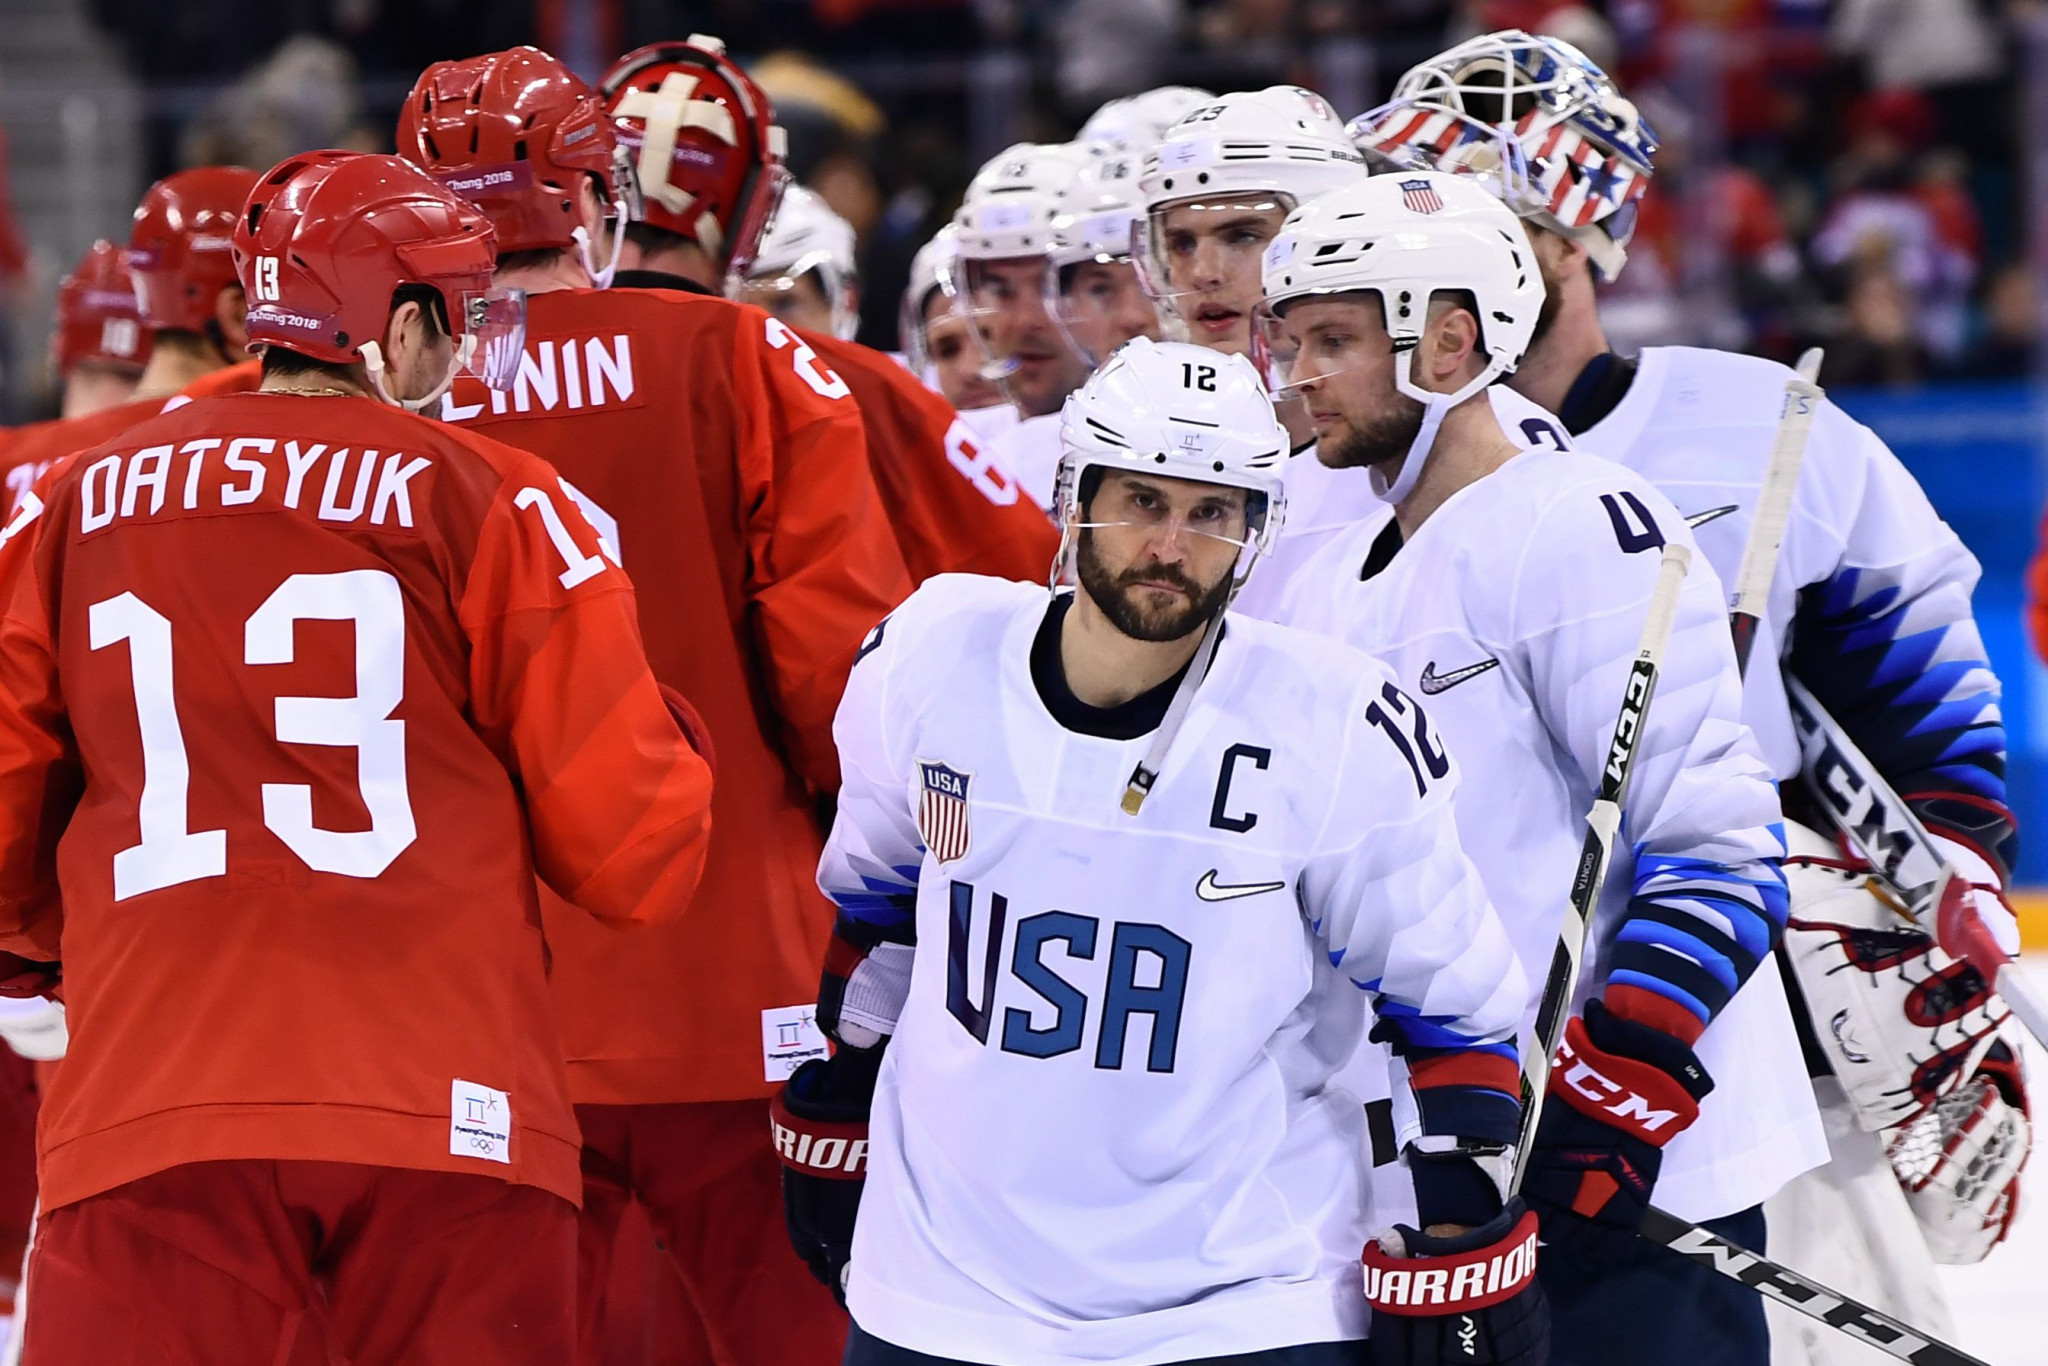 USA and OAR players at the end of their encounter ©Getty Images